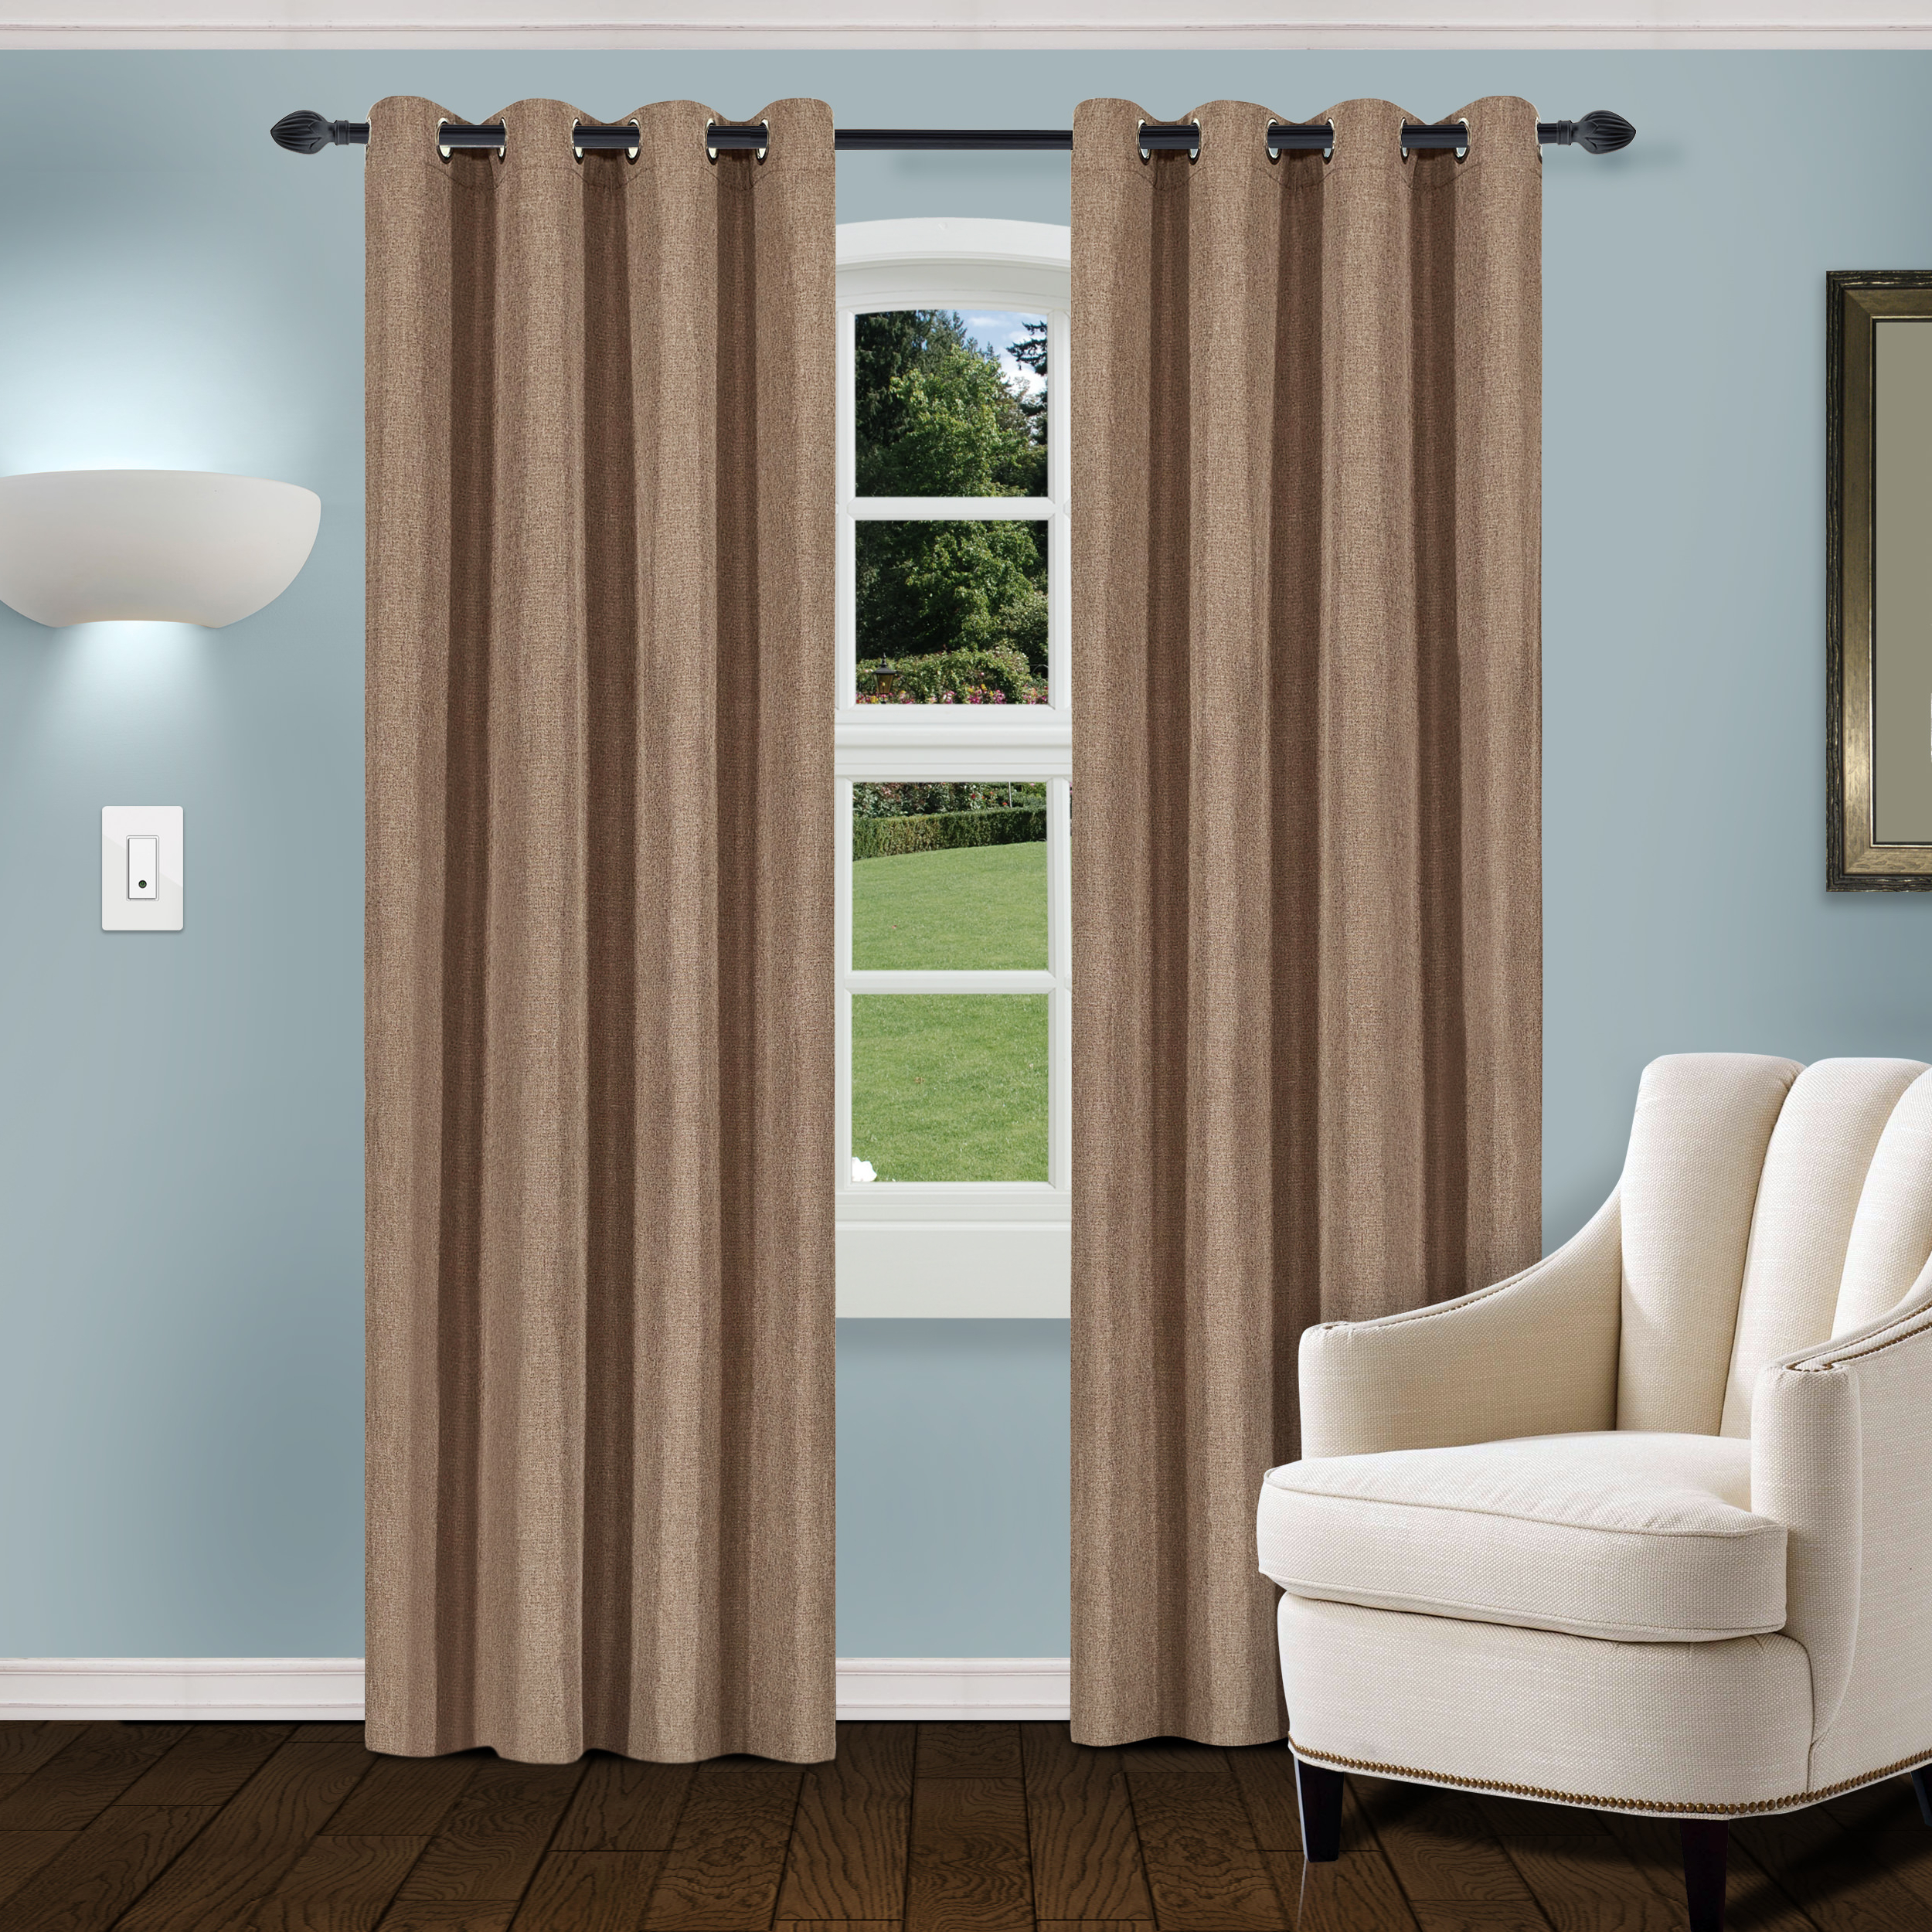 Thermal Textured Linen Grommet Top Curtain Panel Pairs Throughout Fashionable Superior Linen Textured Blackout Curtain Set Of 2 With Grommet Top Header (View 18 of 20)